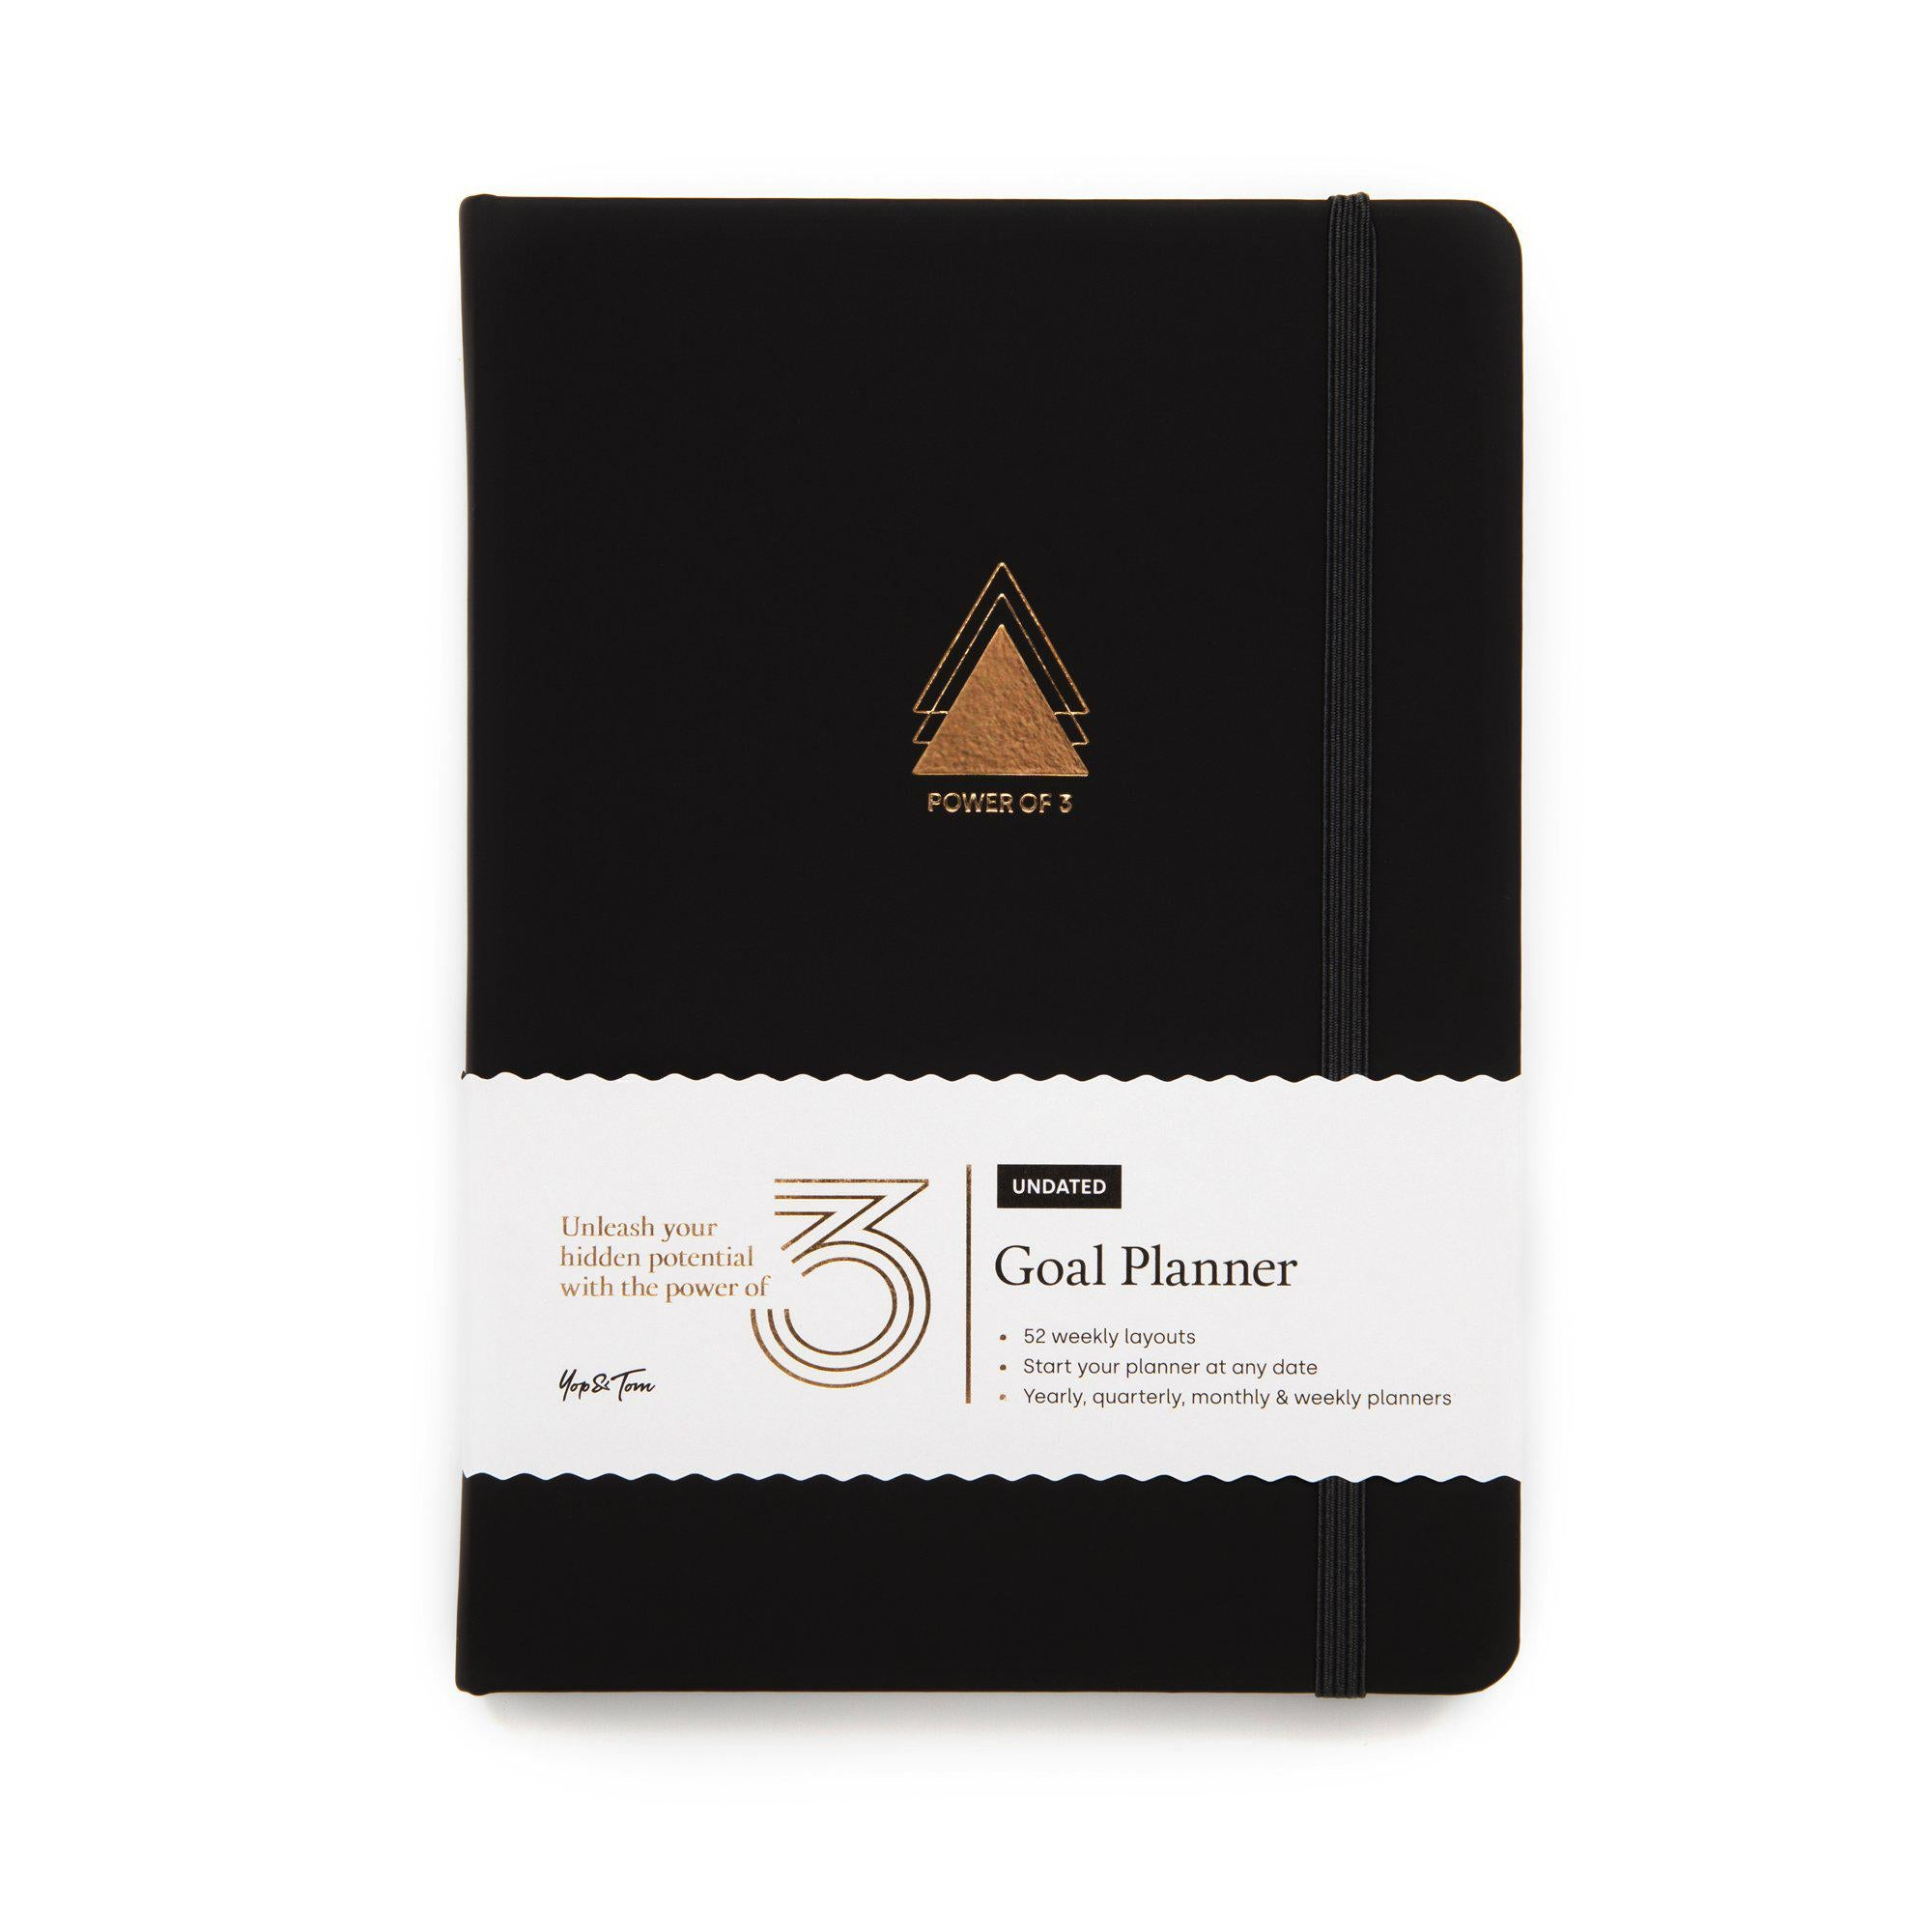 Power of 3 Undated Goal Planner - Charcoal